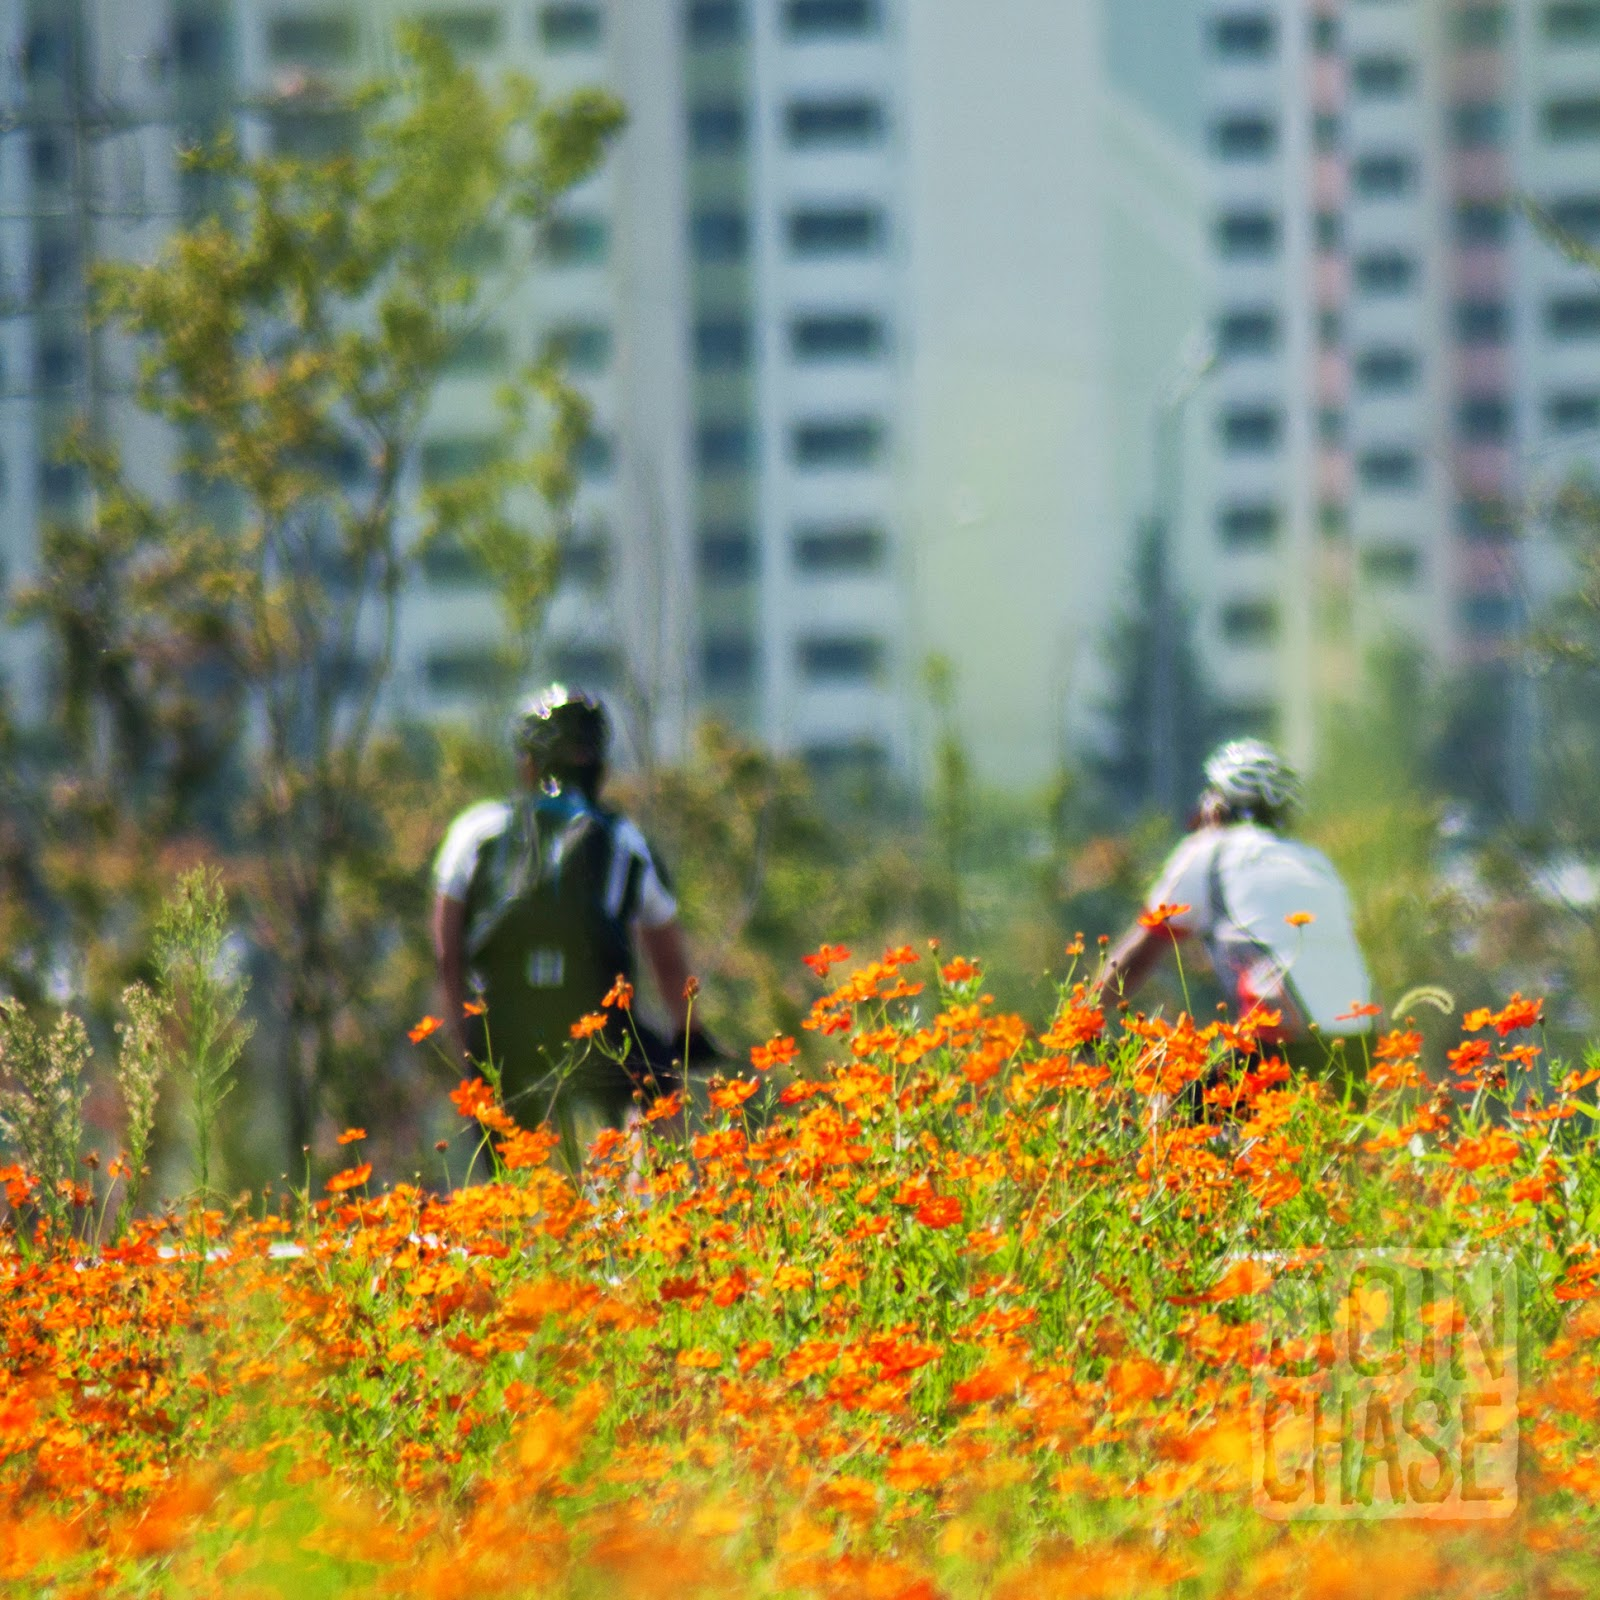 Bicyclists passing through wildflowers along the Yeongsang River Bike Path near Gwangju, South Korea.